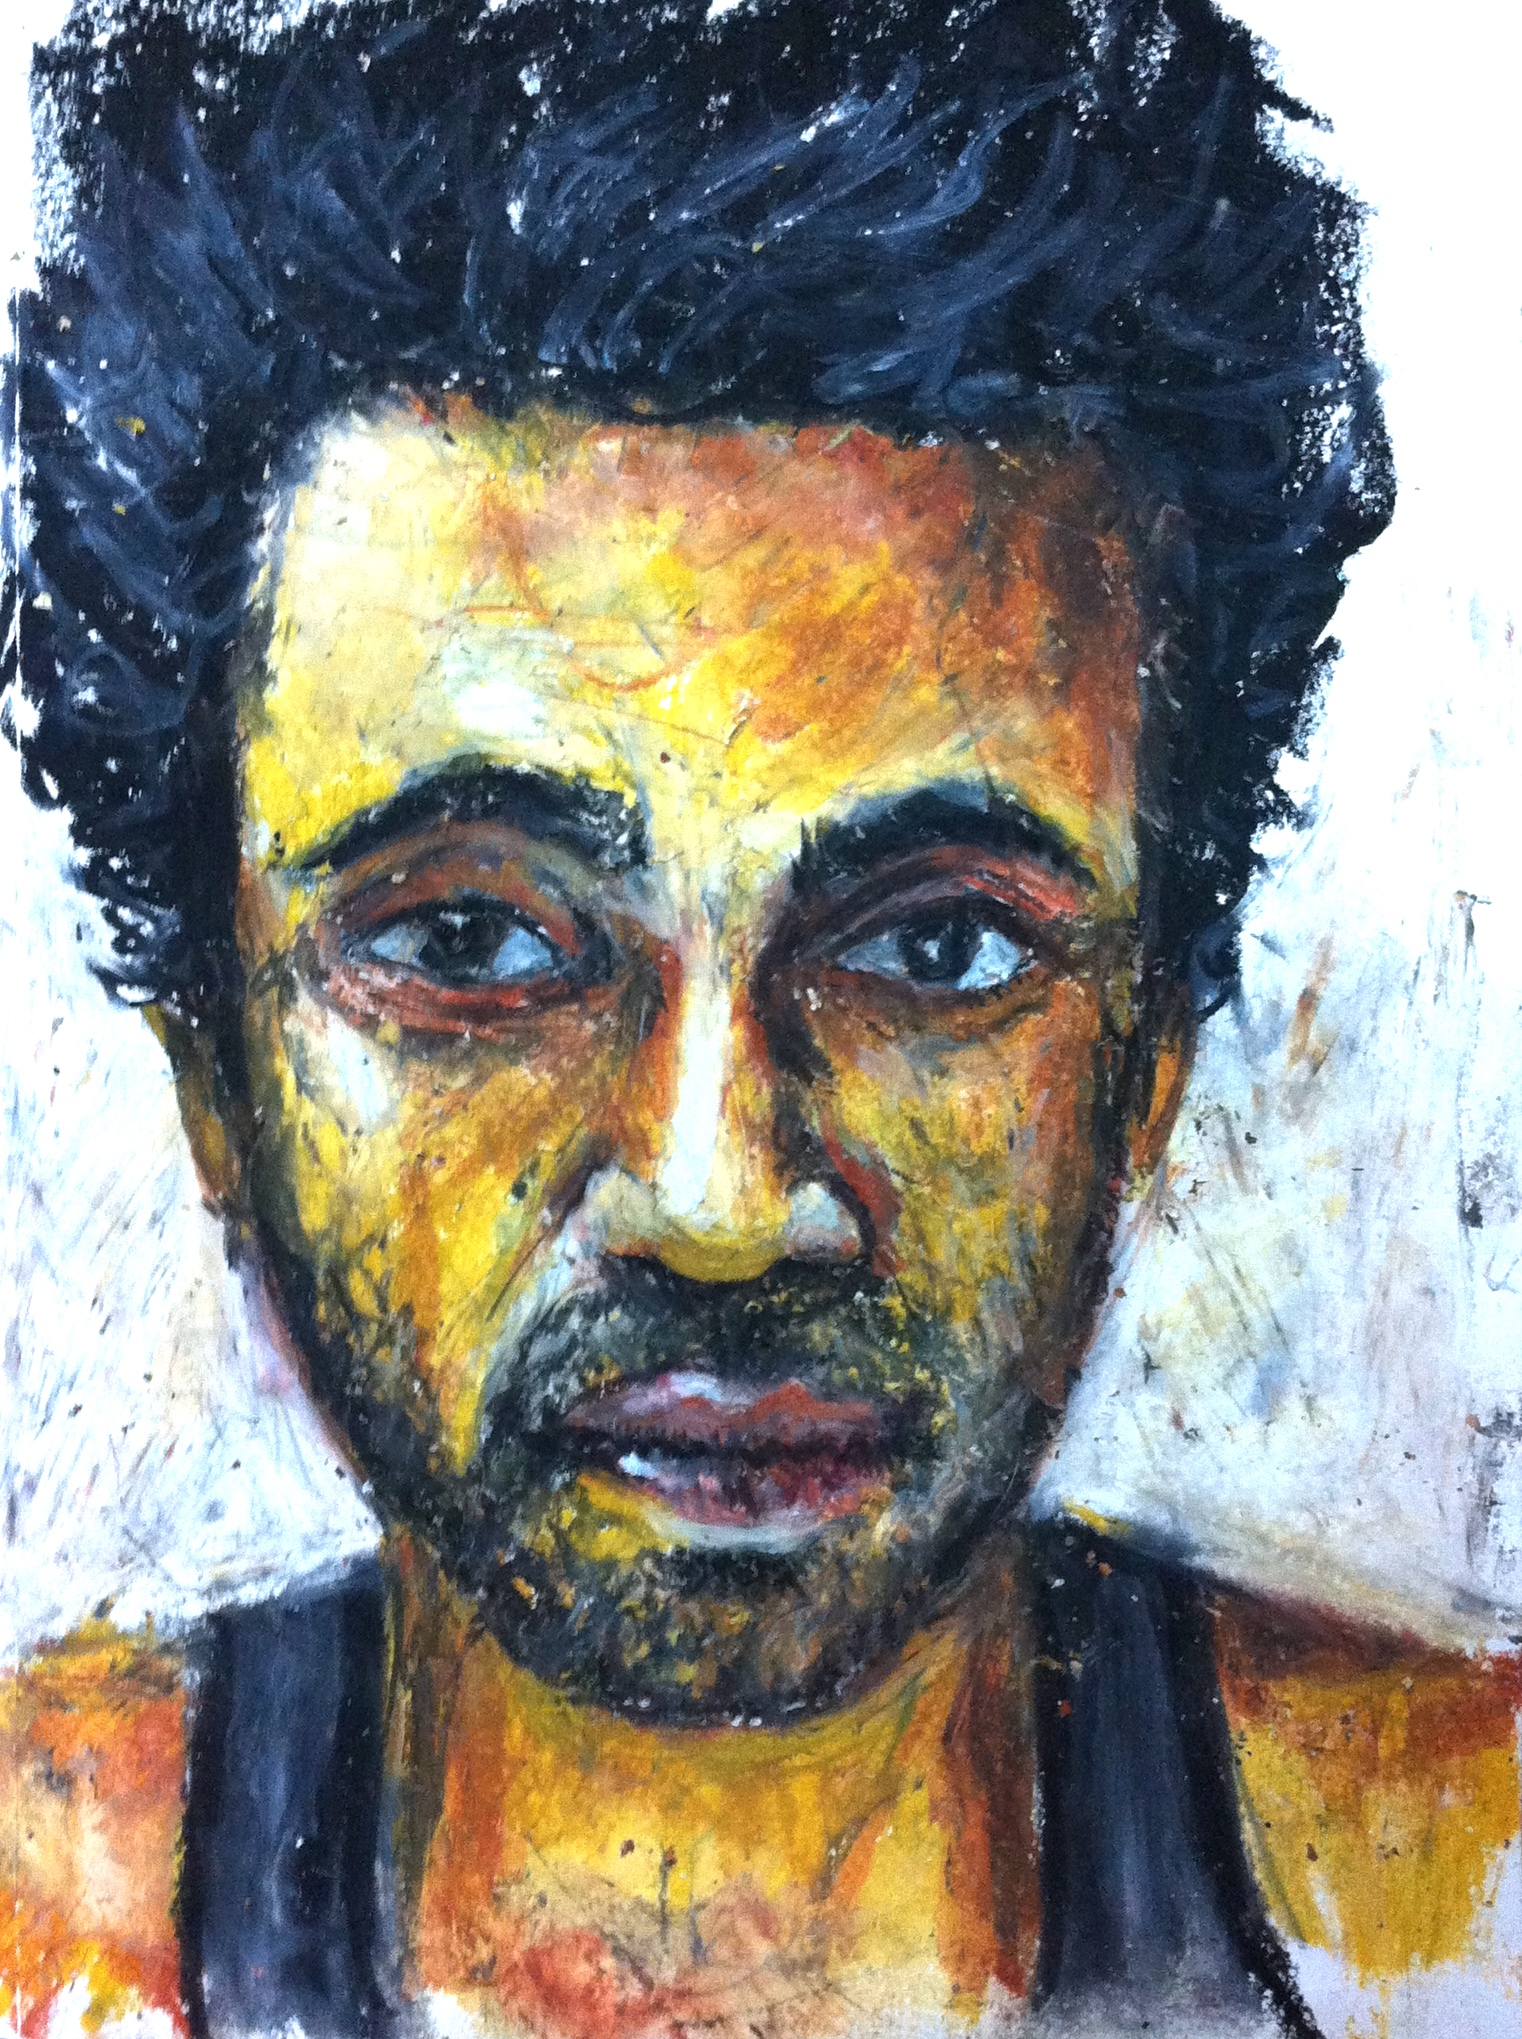 Dhaka Drawings 2015 : Self-portrait – Oil Pastels | RUHUL ABDIN